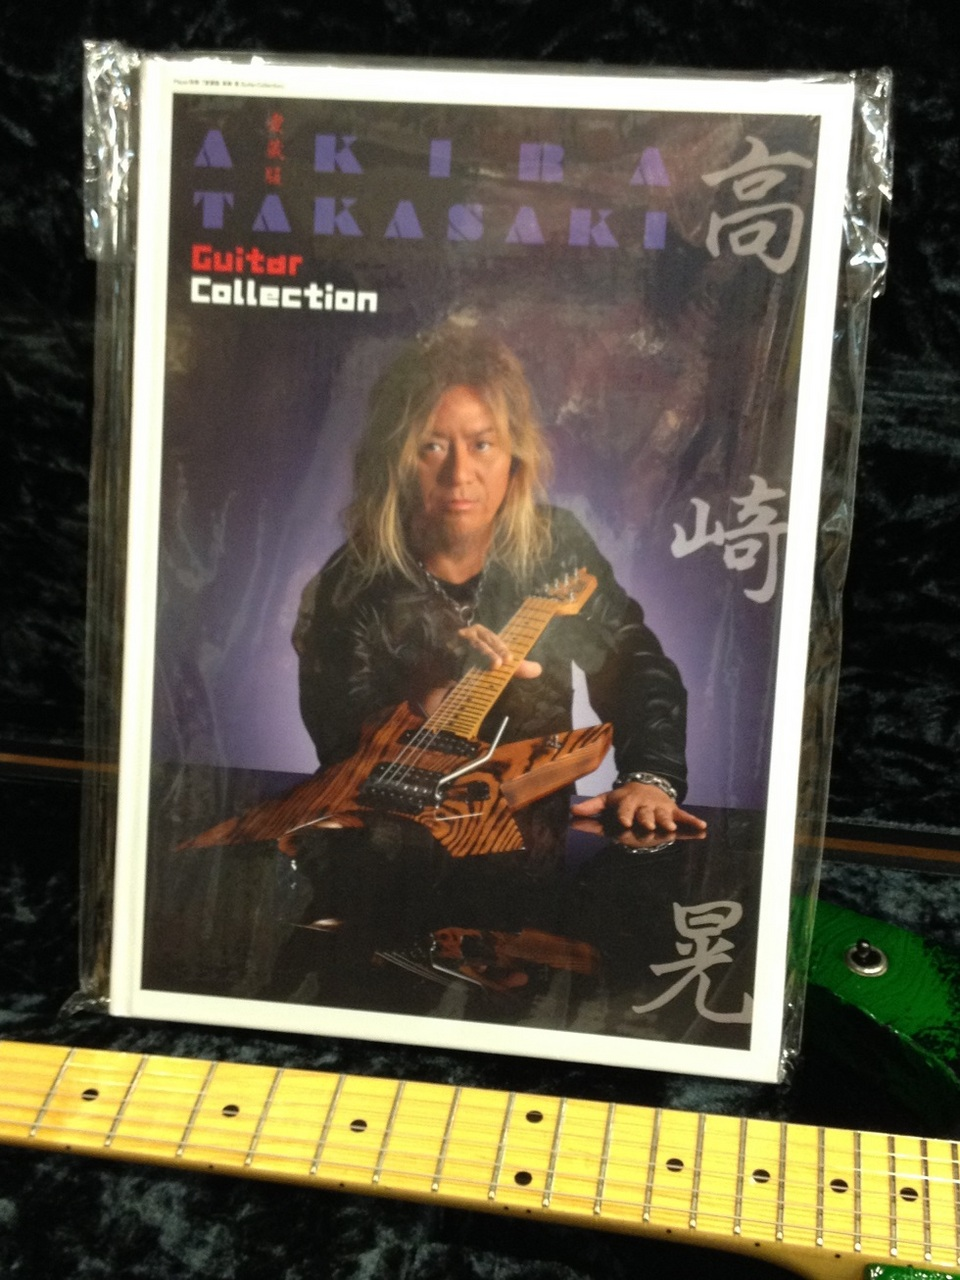 Player Corporation favorite book Akira Takasaki Guitar Collection